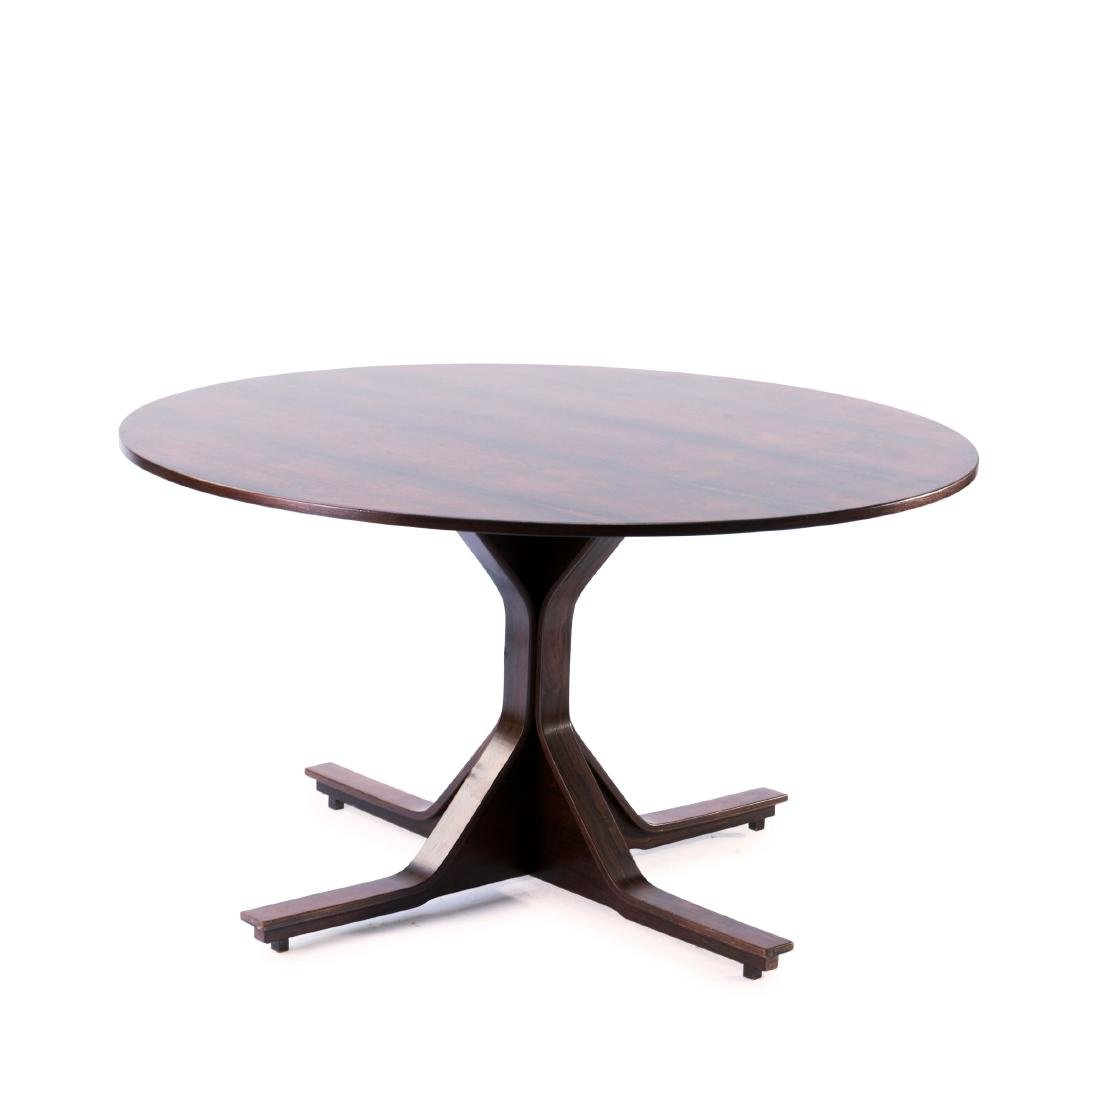 '522' dining table, 1960